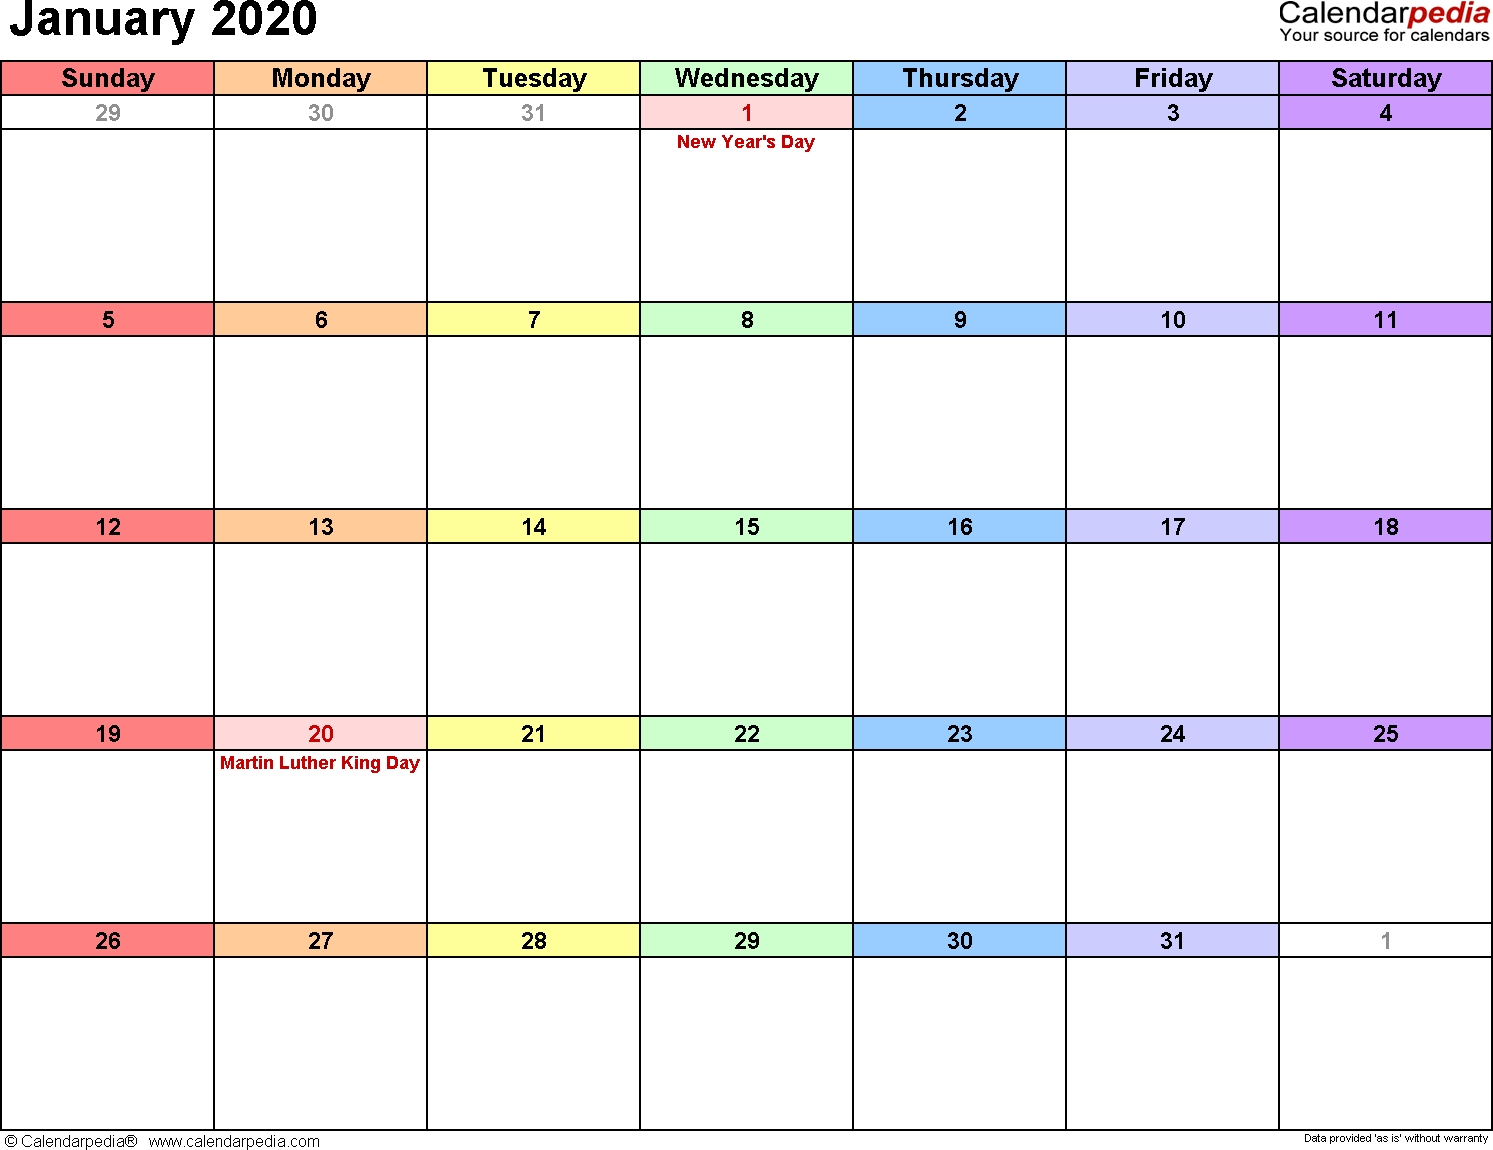 January 2020 Calendars For Word, Excel & Pdf-January 2020 Day Calendar